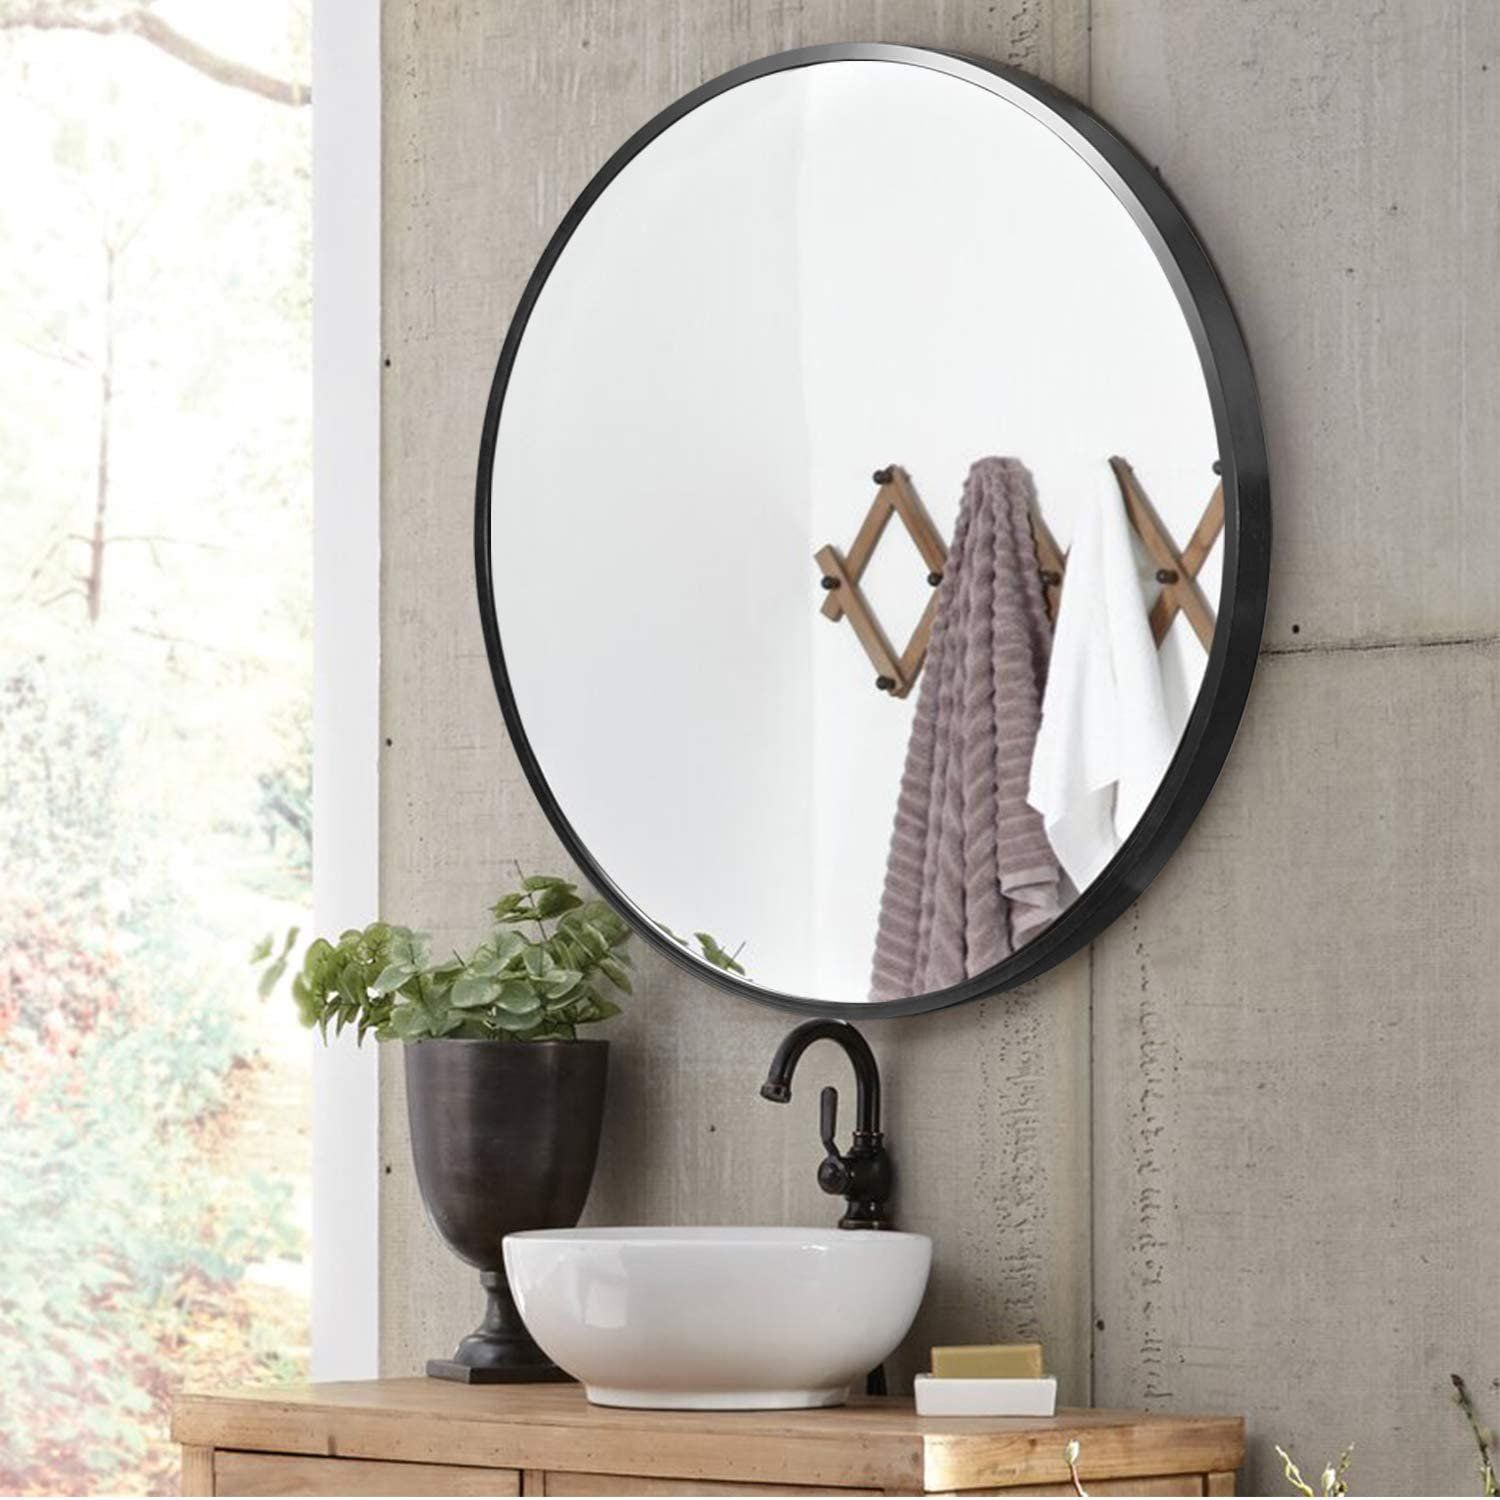 Neutype 32 Black Round Wall Mirror Modern Aluminum Alloy Frame Accent Wall Mounted Decorative Mirror Black Round Mirror Round Mirror Bathroom Accent Mirrors [ 1500 x 1500 Pixel ]